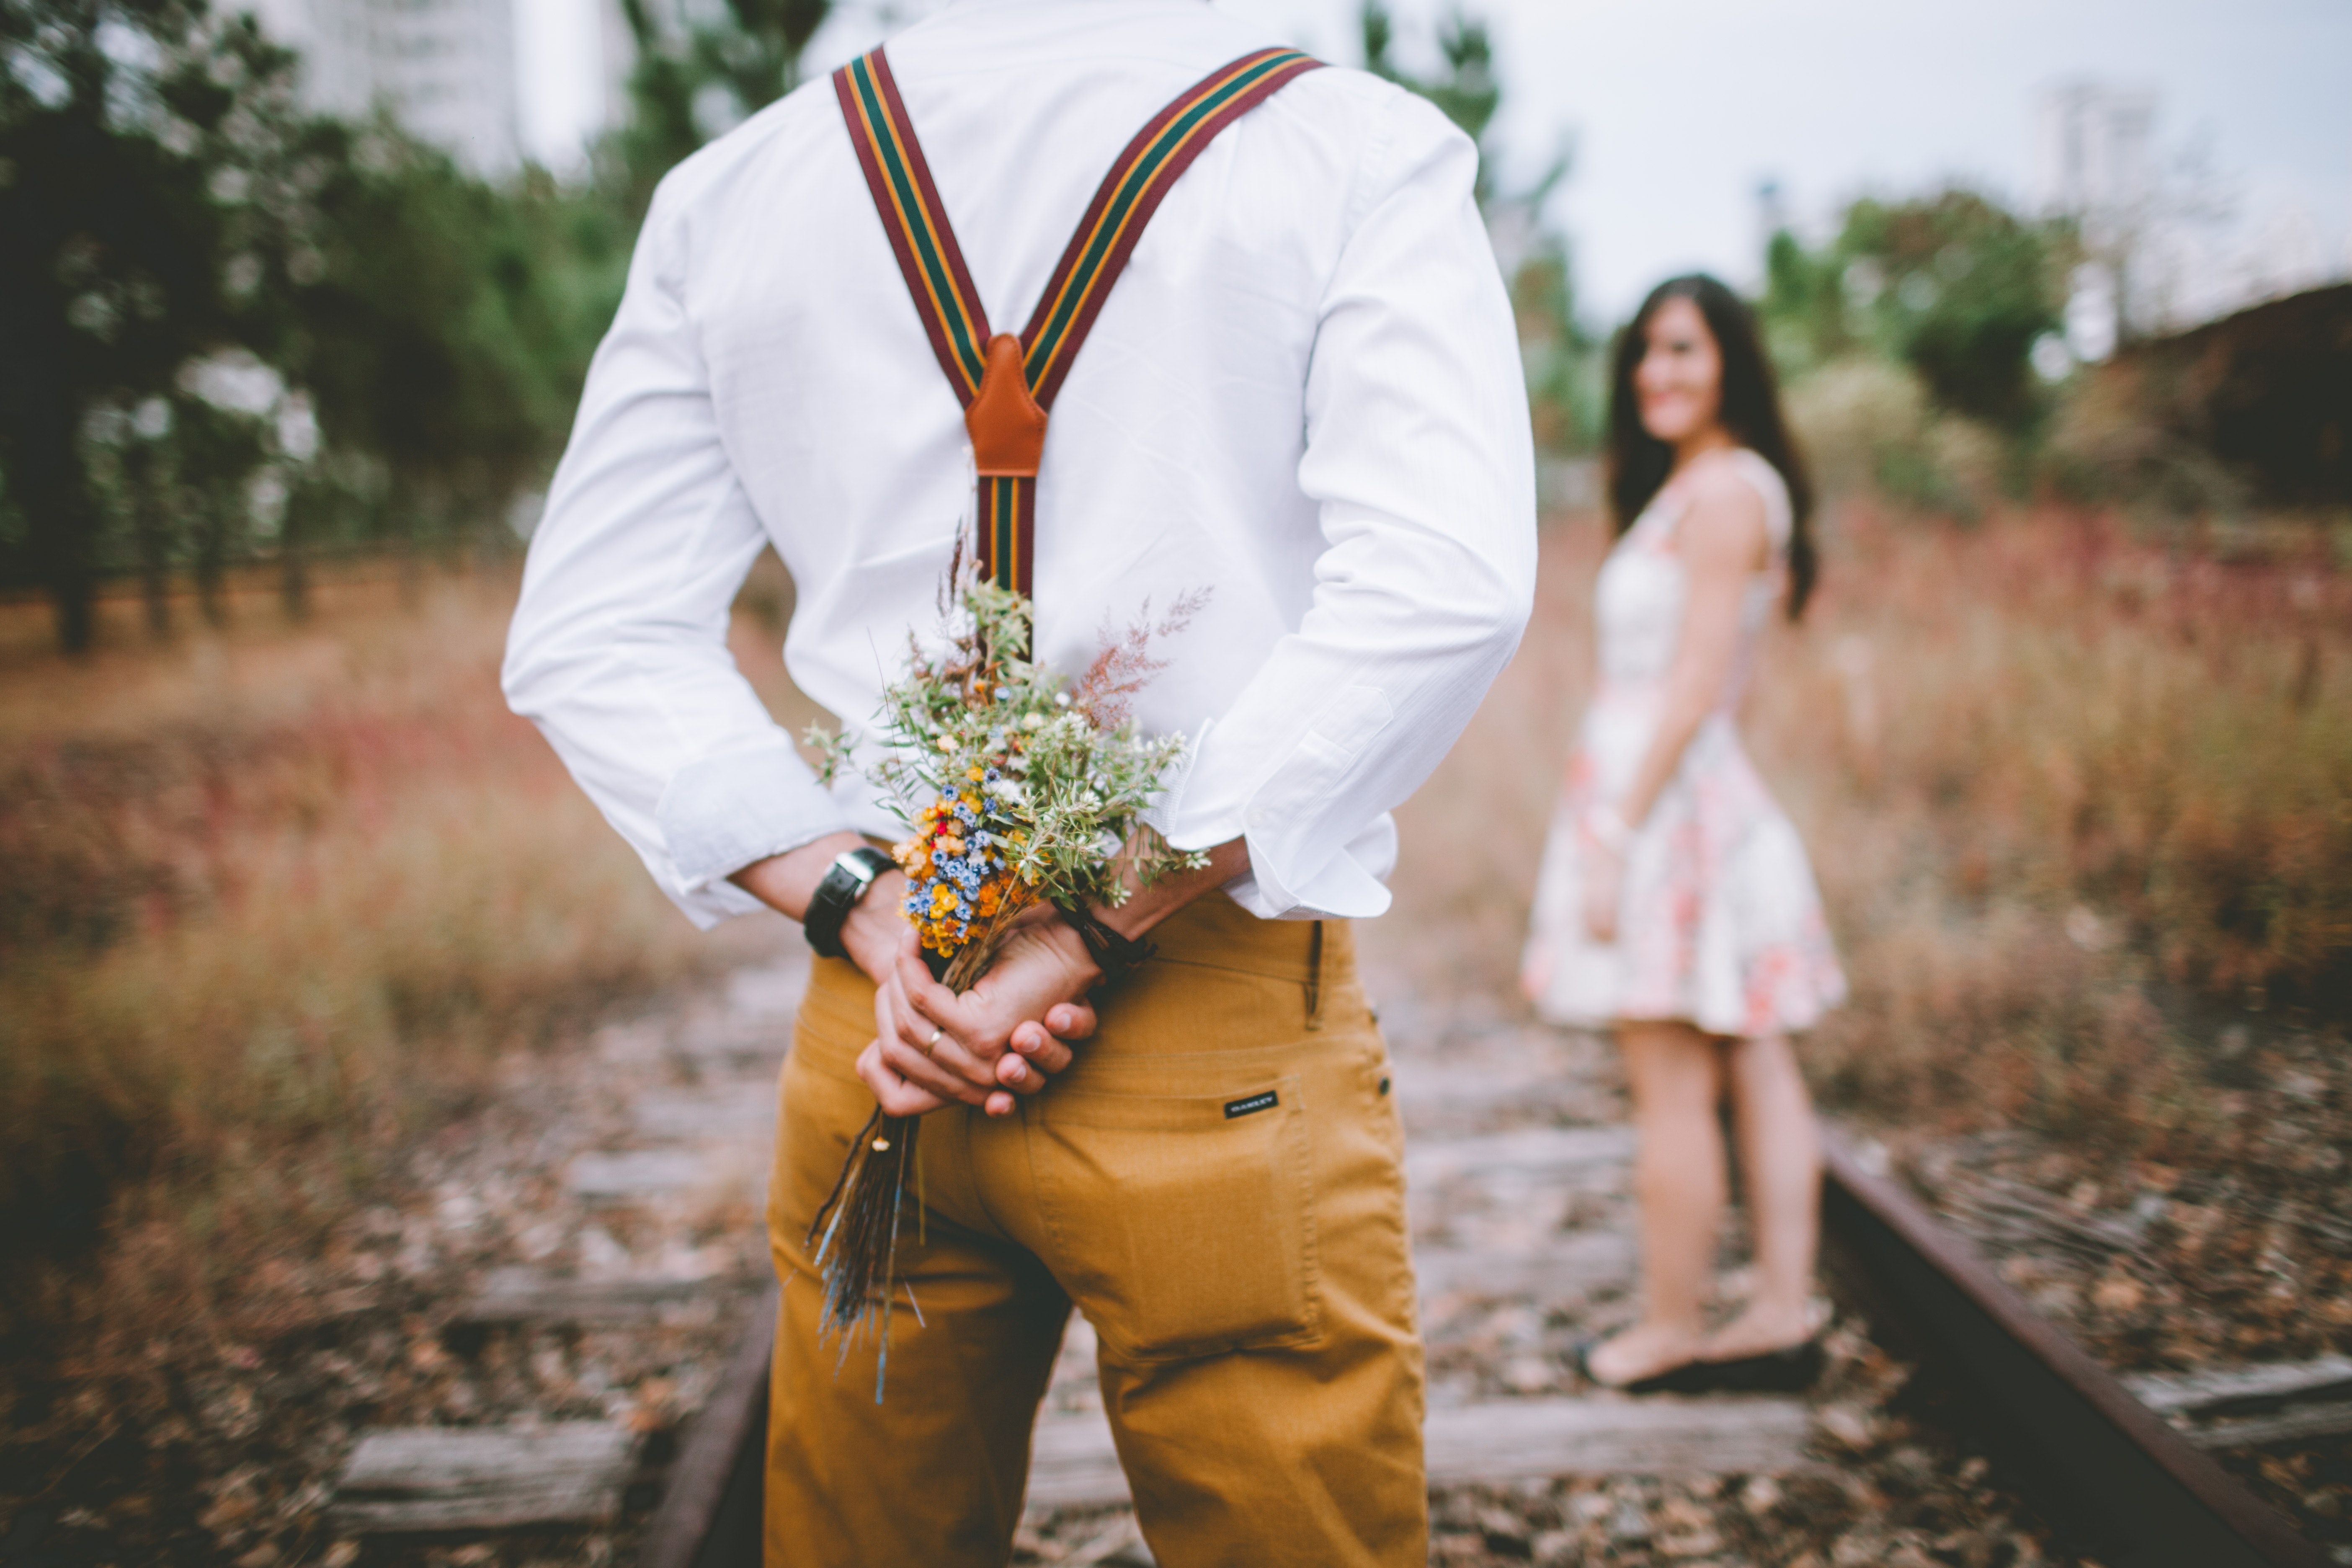 How To Handle Unmet Expectations In Marriage